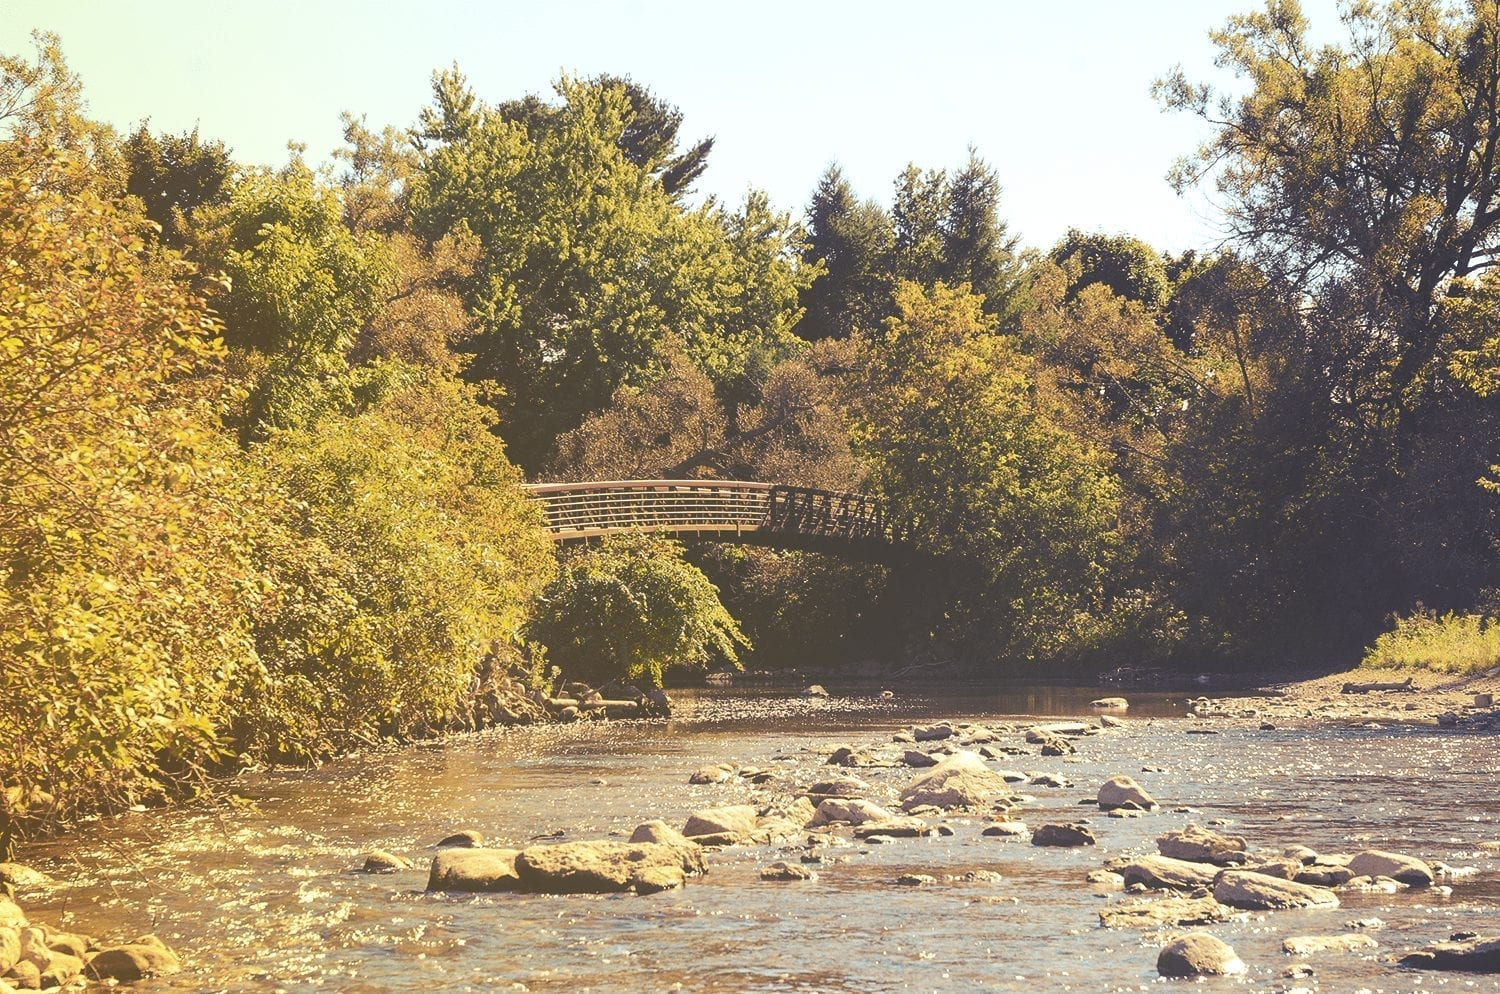 Foot bridge over a river